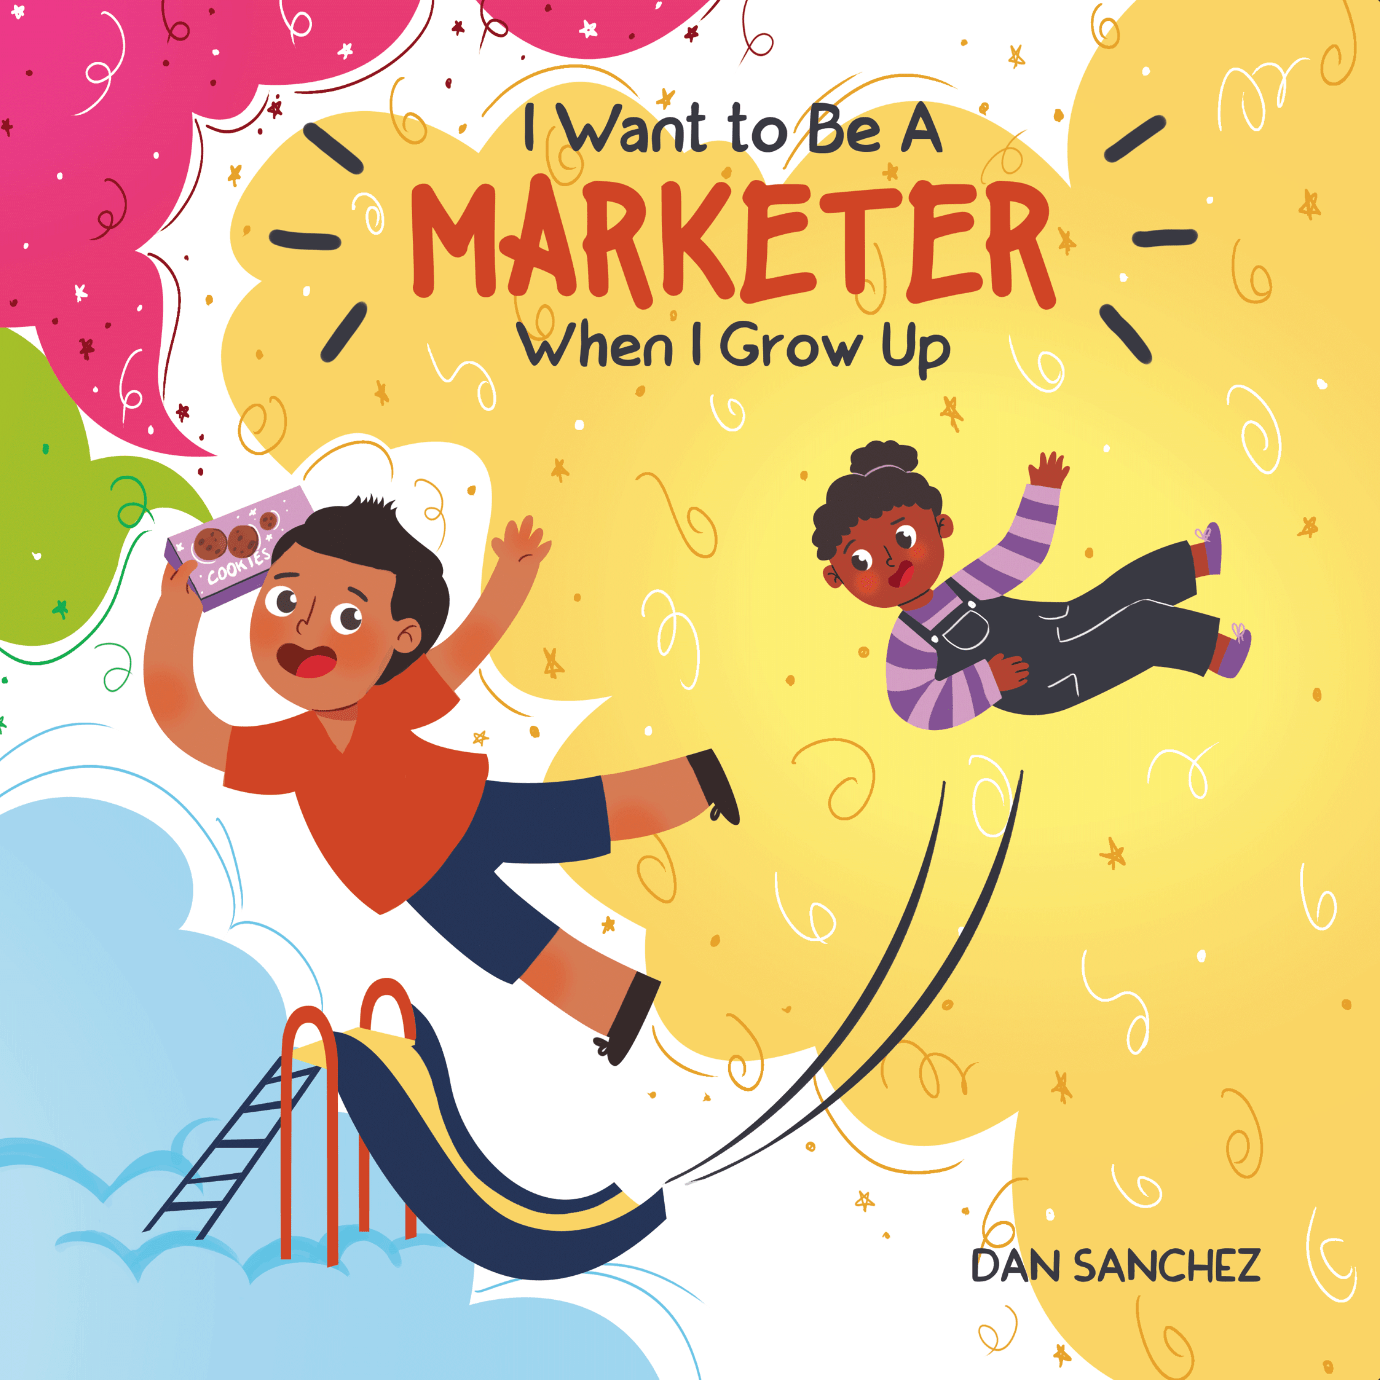 I Want to Be a Marketer When I Grow Up Cover by Dan Sanchez